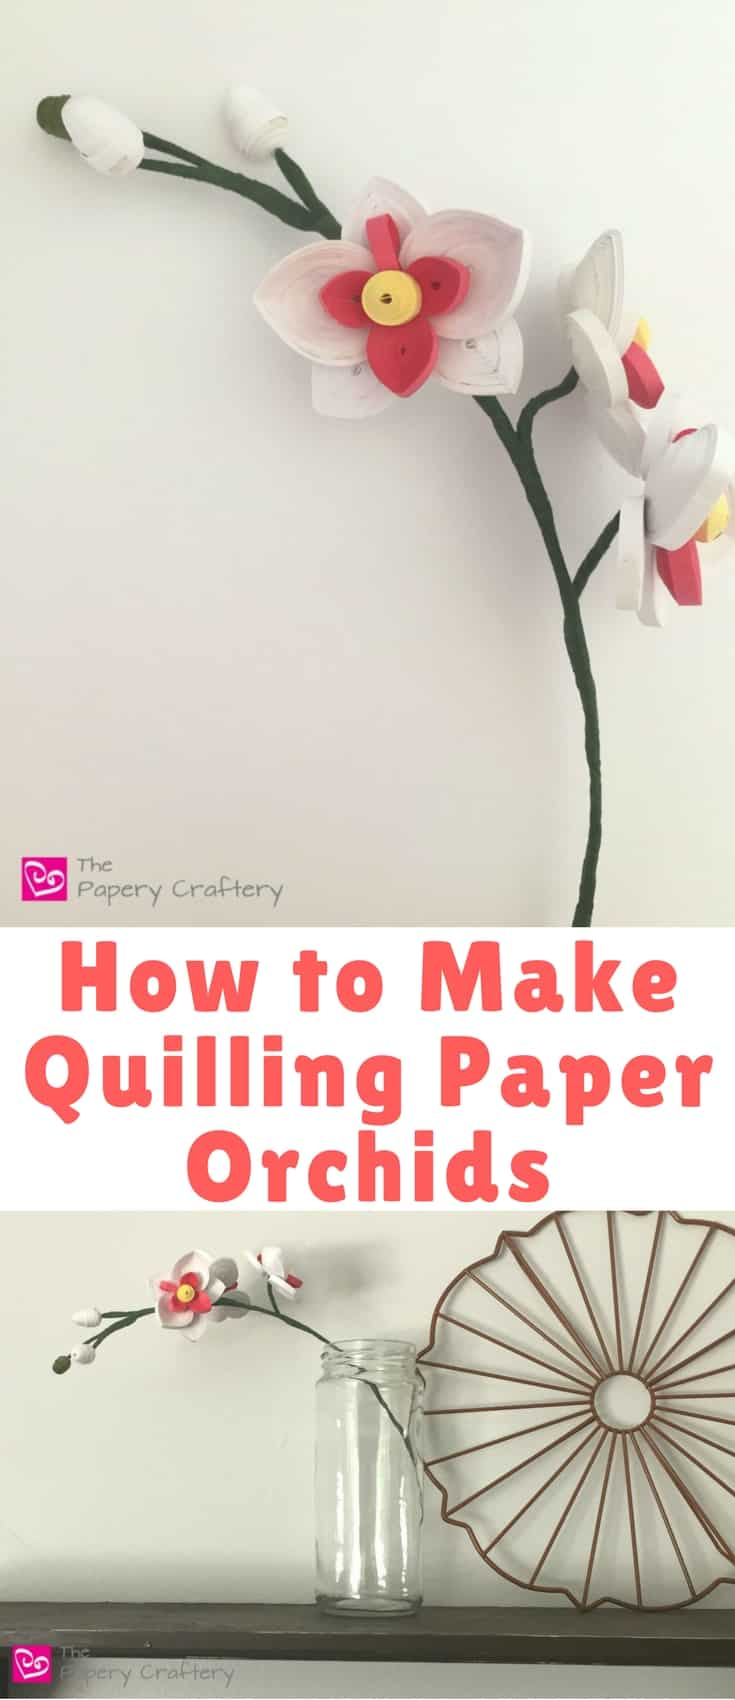 I hope you're inspired to after this tutorial on how to make quilling paper orchids and decide to roll your own!